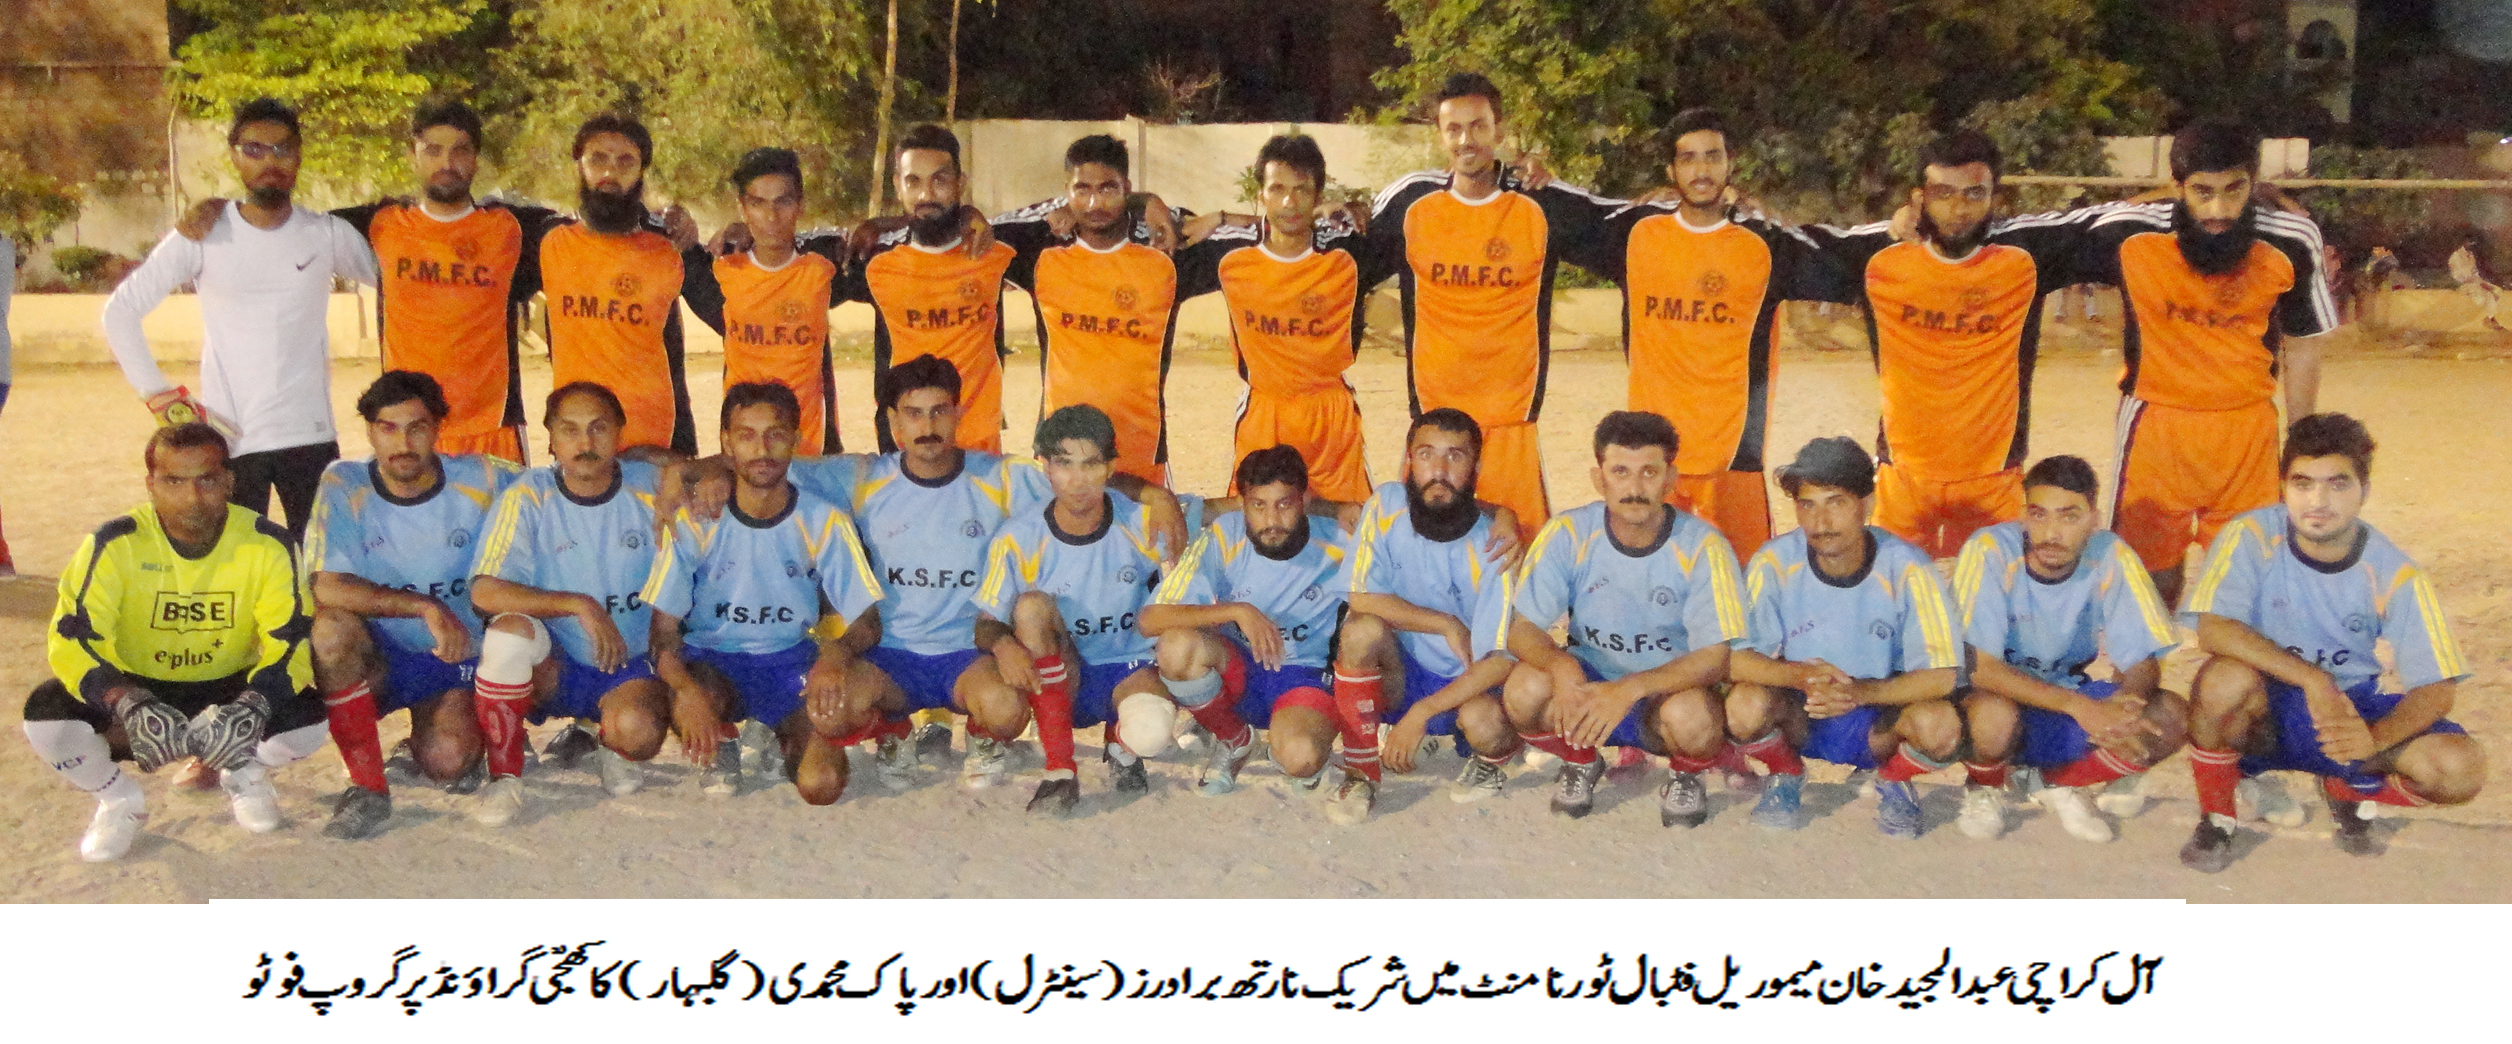 Abdul Majeed Khan Tournament: Karachi Friends, Young Prince and North Brothers secure wins